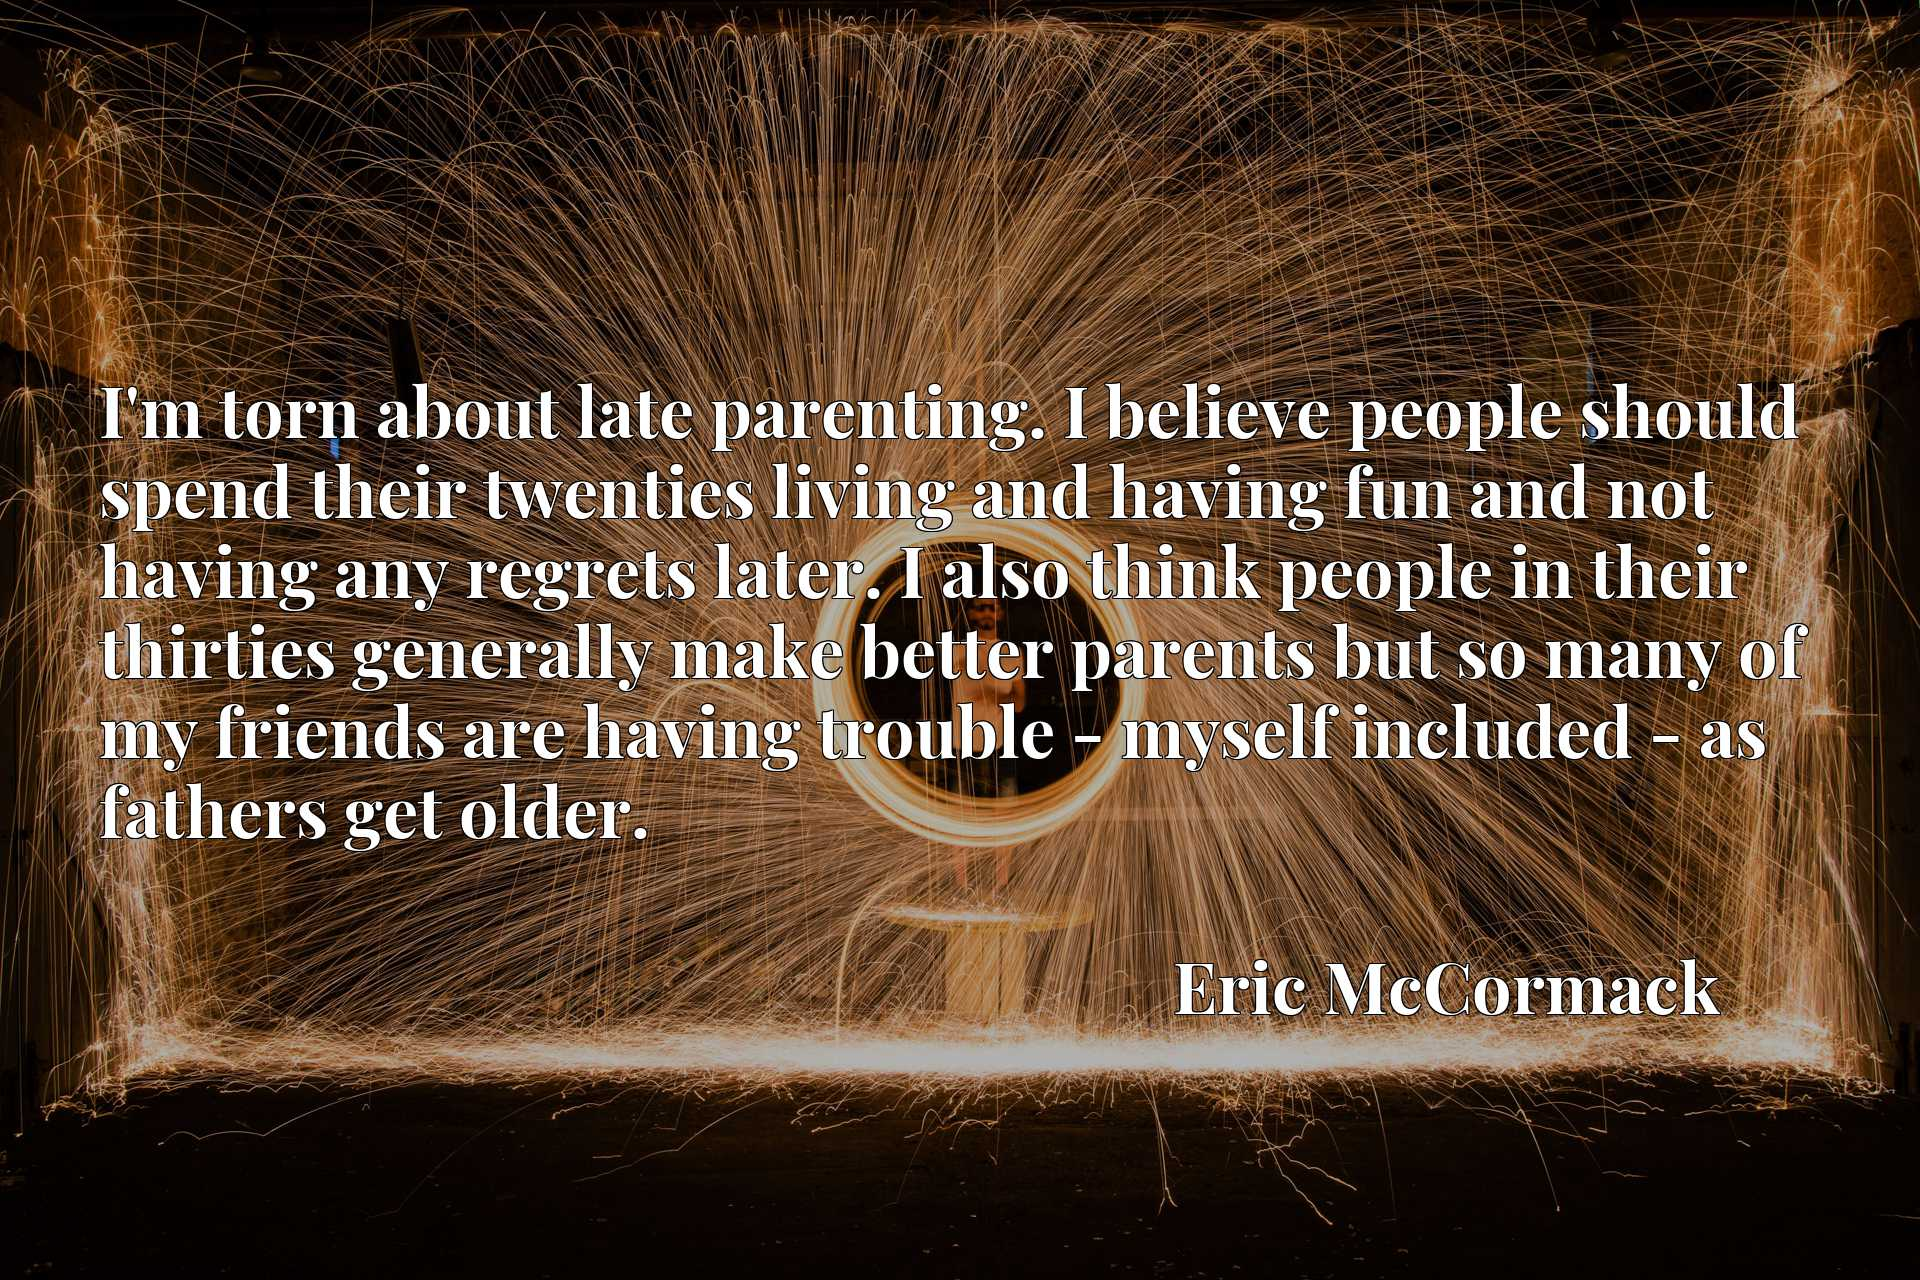 I'm torn about late parenting. I believe people should spend their twenties living and having fun and not having any regrets later. I also think people in their thirties generally make better parents but so many of my friends are having trouble - myself included - as fathers get older.